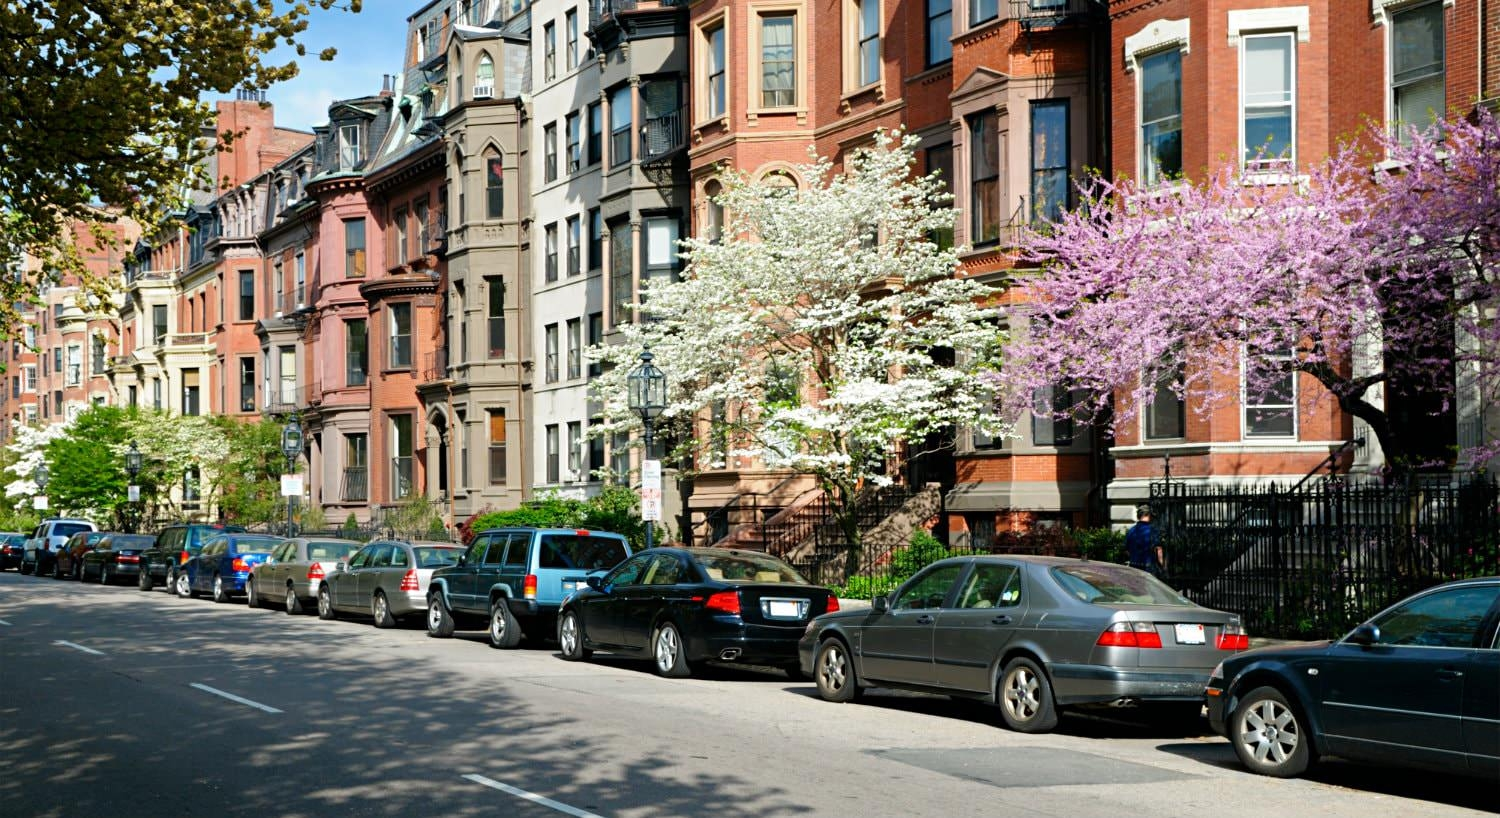 Row of different colored brownstones on a street with parked cars and purple and white flowering trees